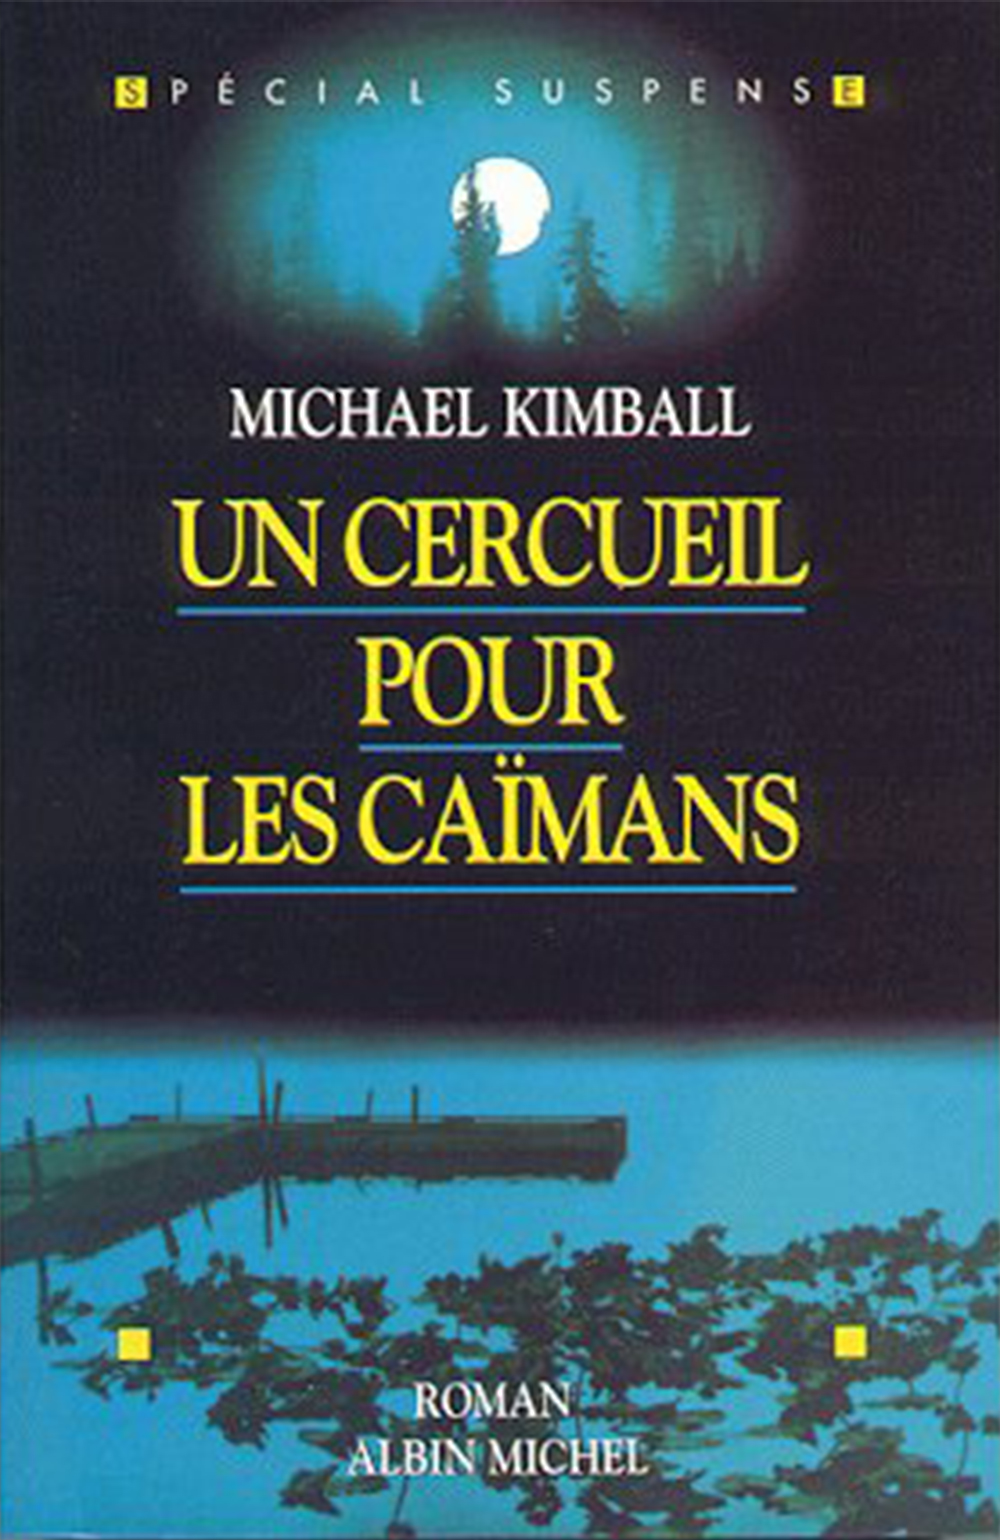 France edition book cover